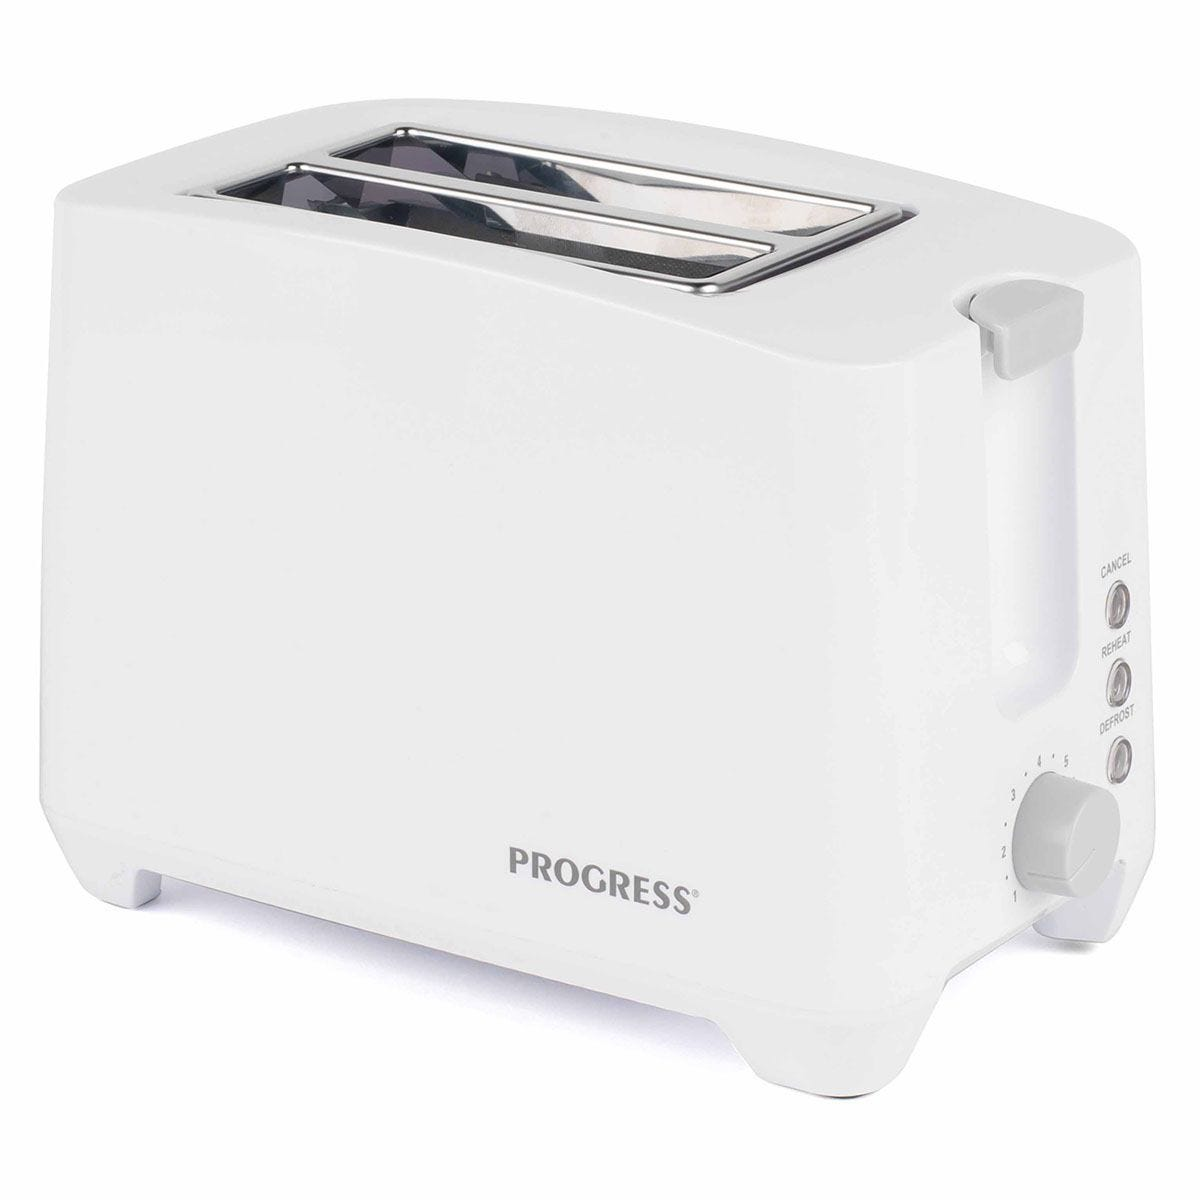 Progress EK3393P Two Slice Toaster with Slide-Out Crumb Tray - White